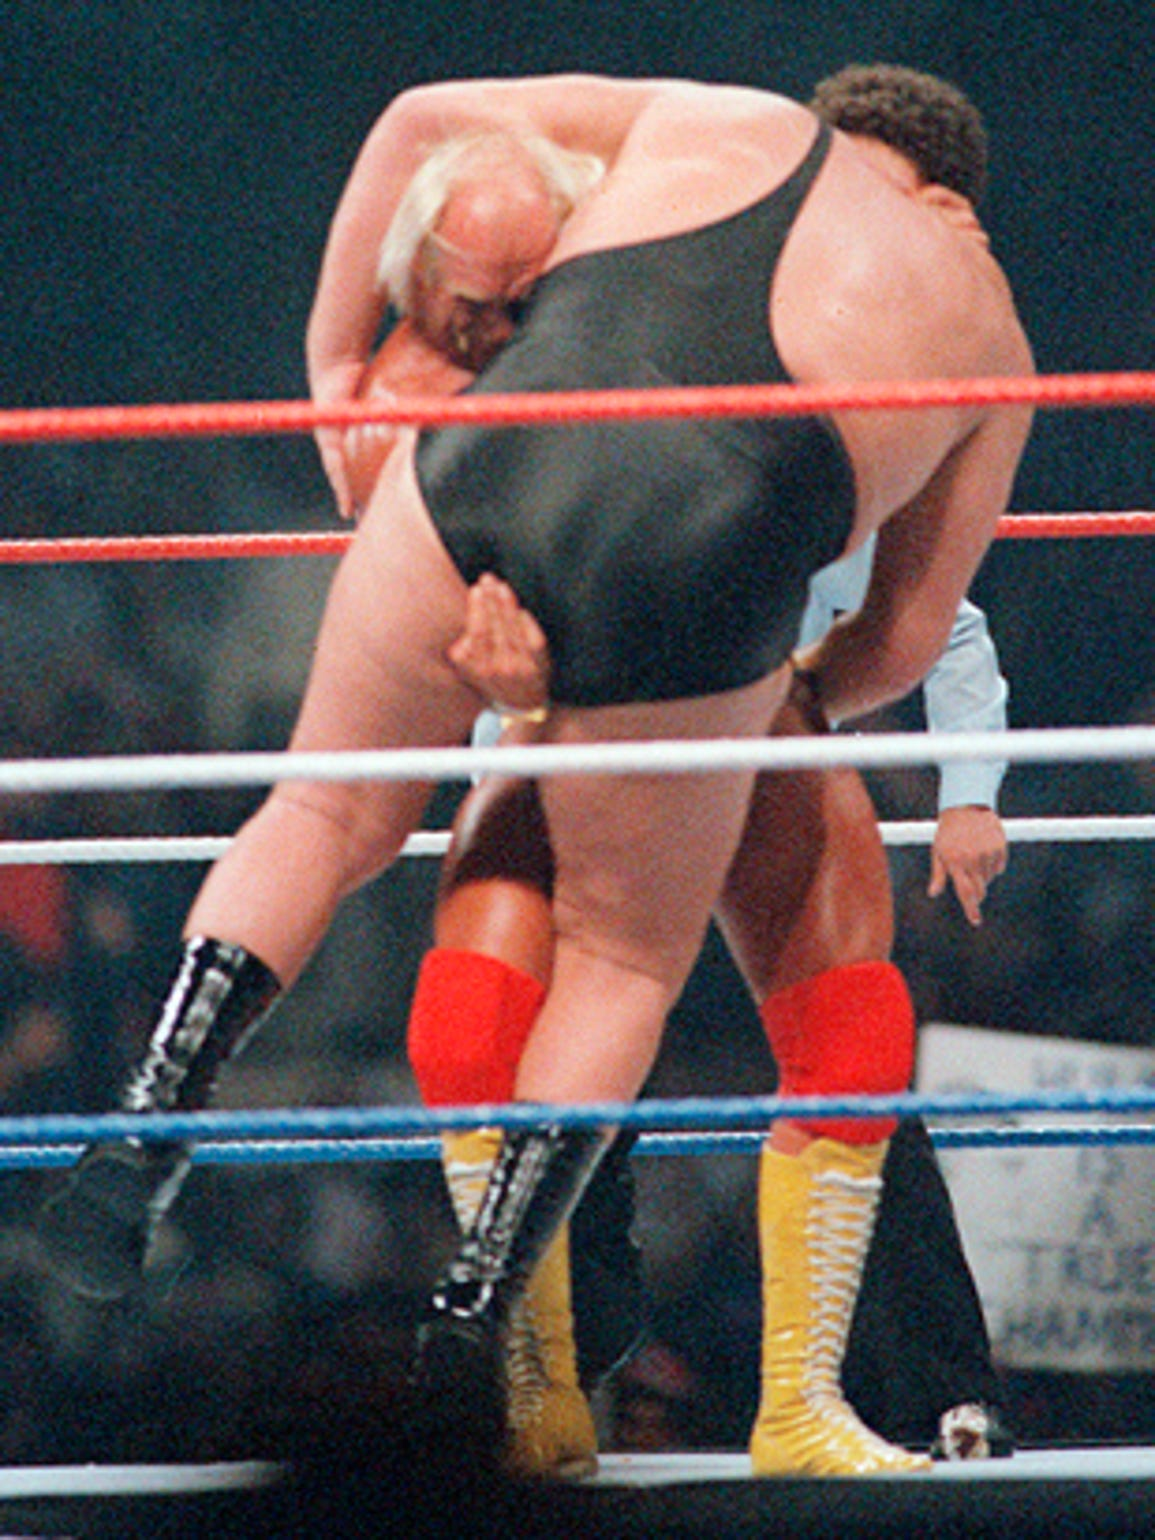 Hulk Hogan bodyslams Andre the Giant in the most epic